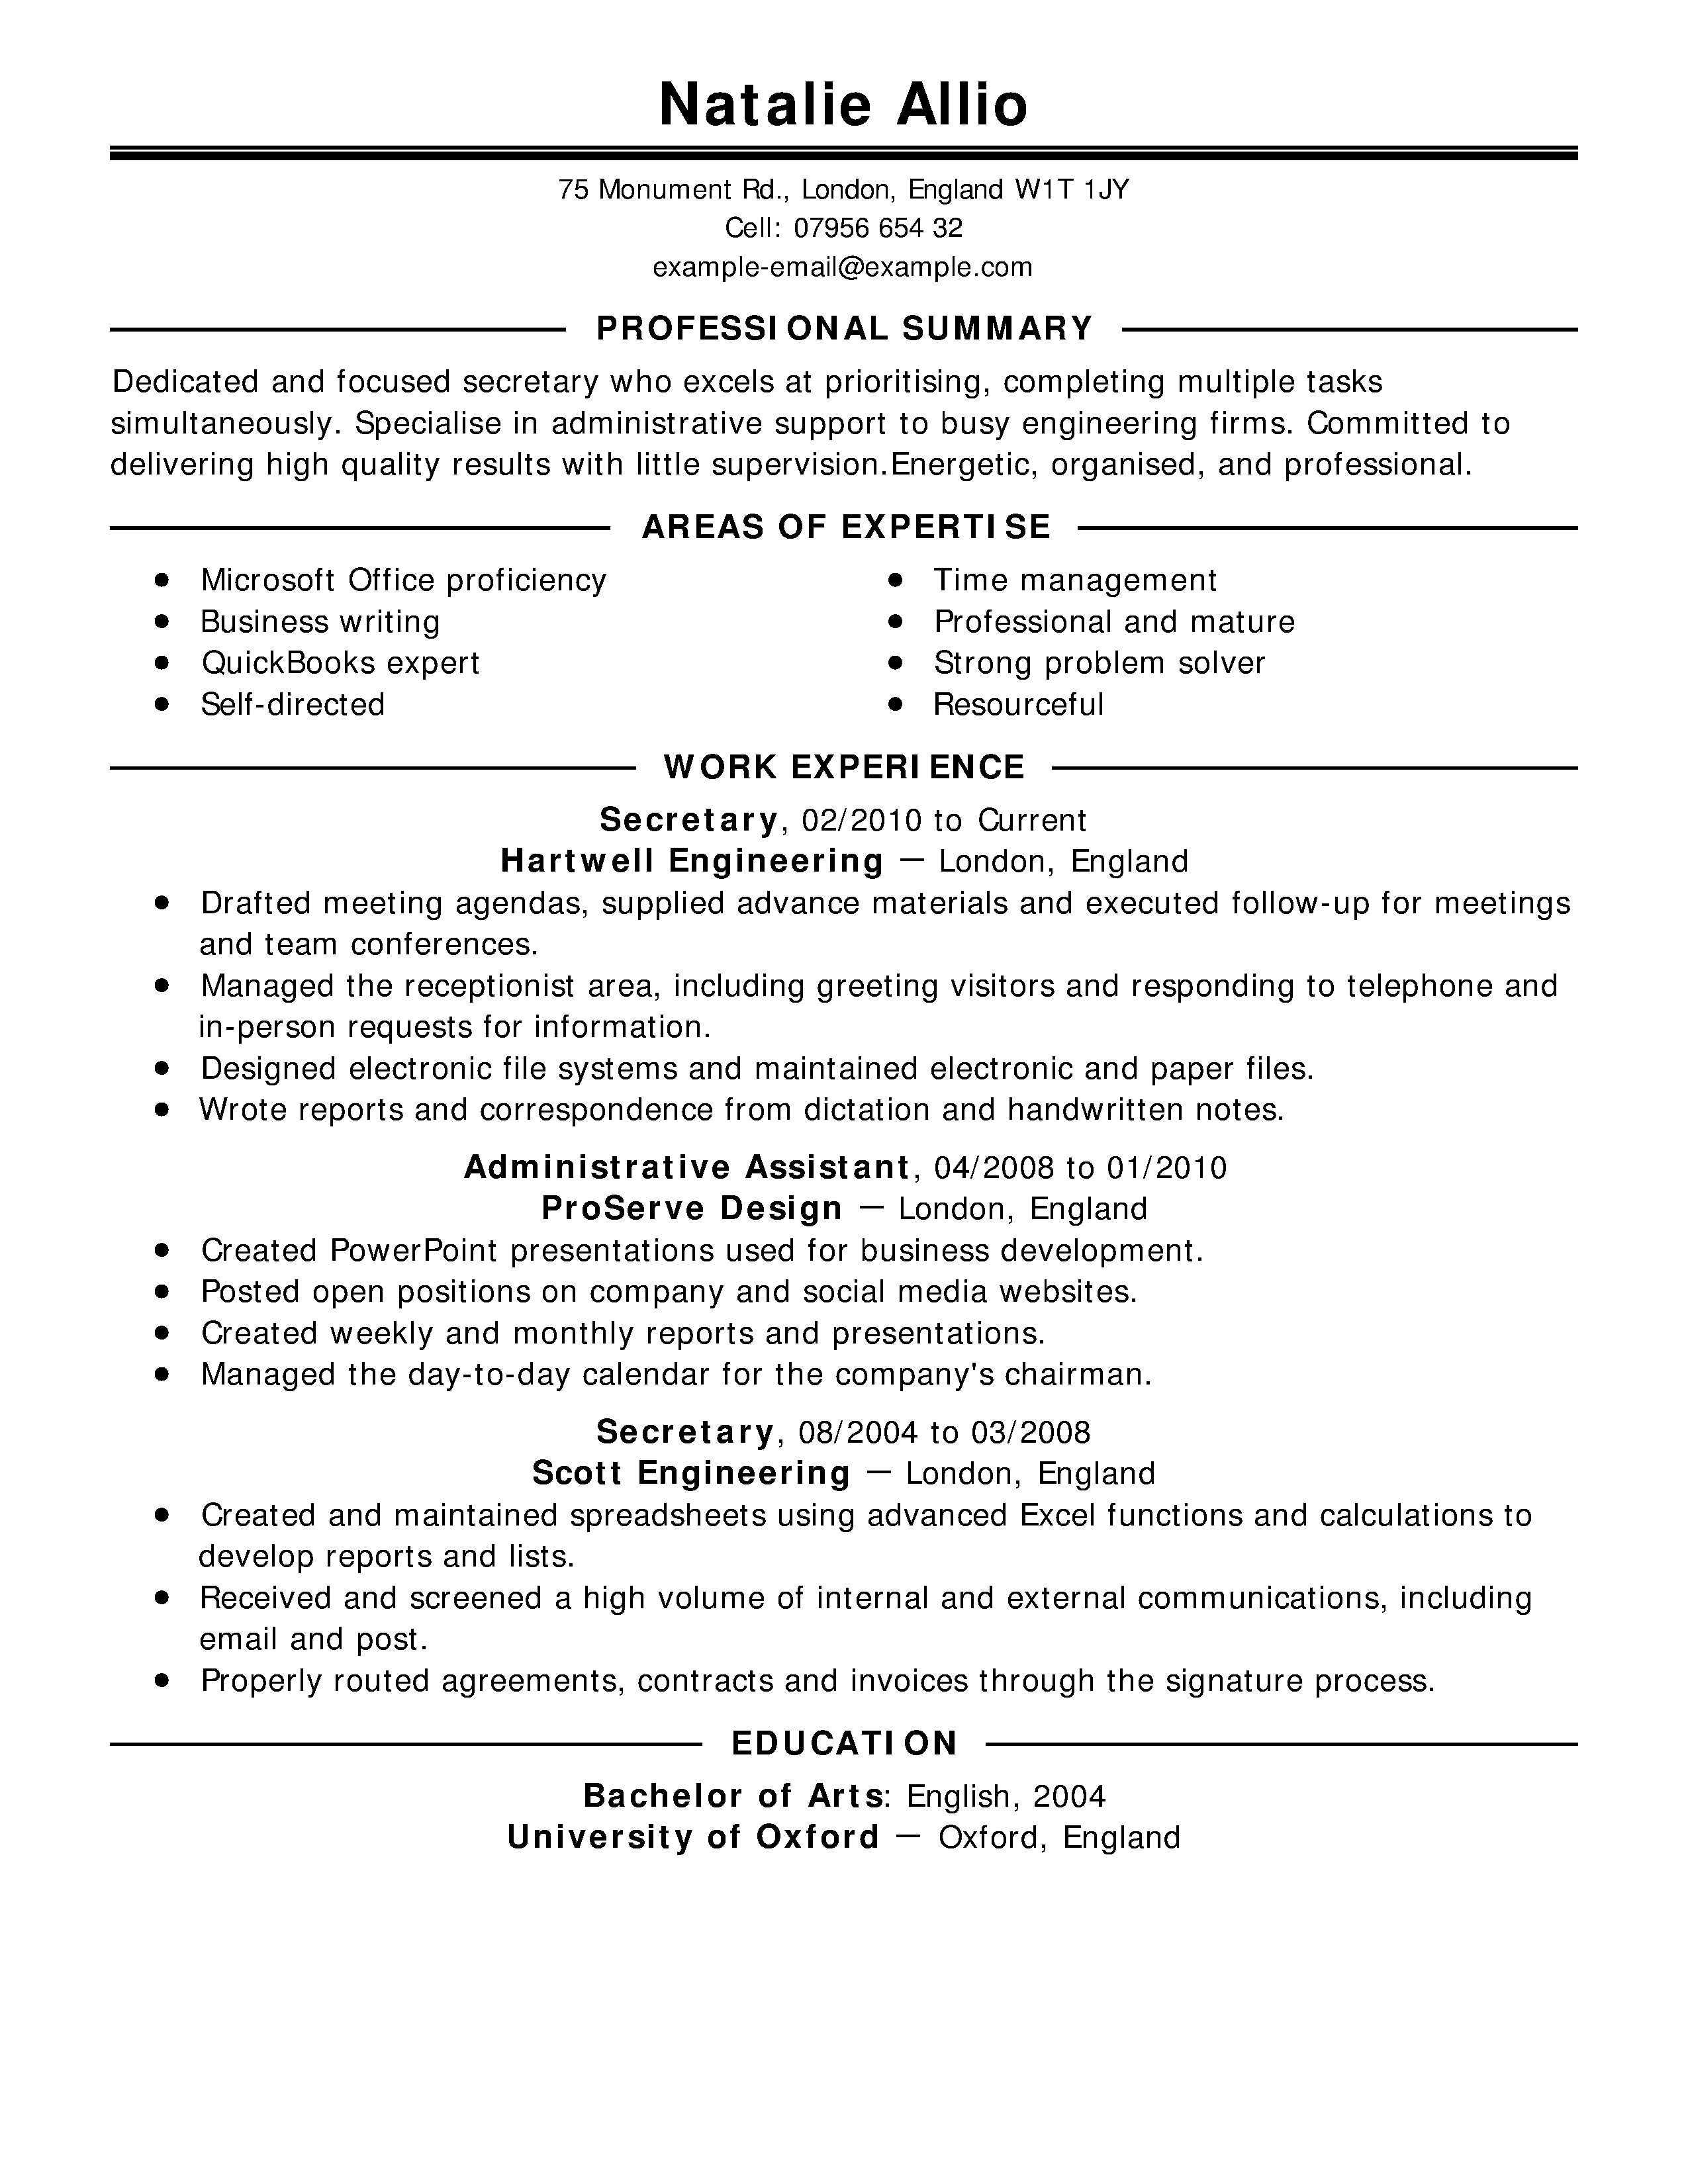 Professional Nurse Resume Sample Nurse Resume Abroad Resume Builder